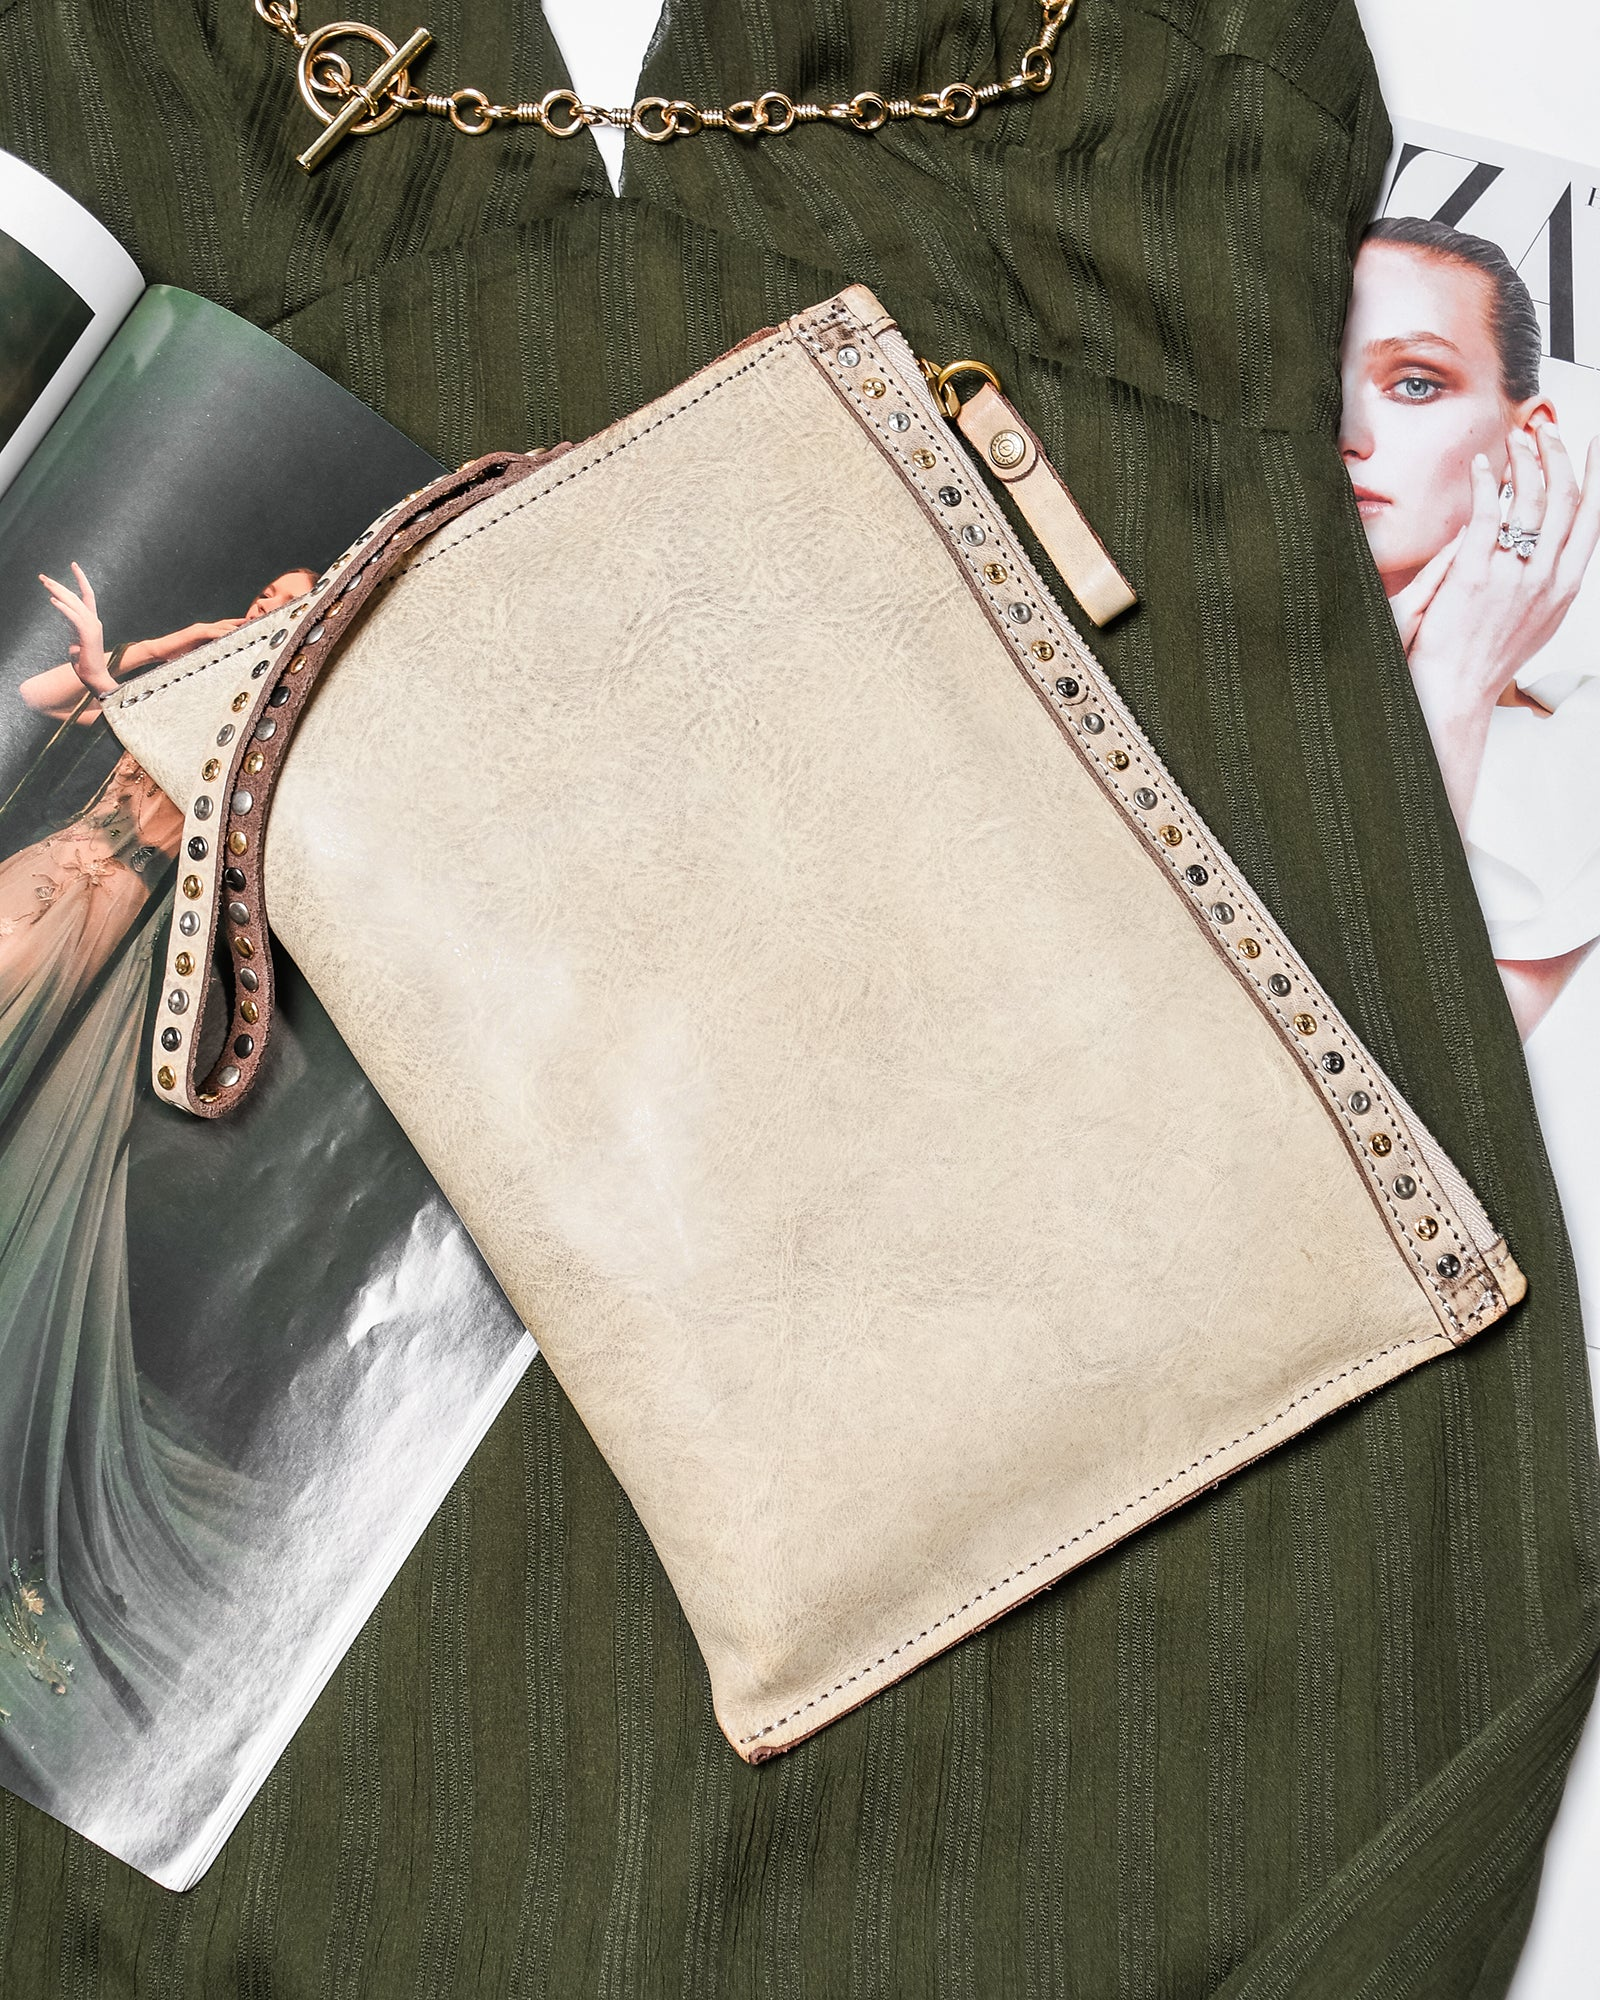 CAMPOMAGGI PIX CROSS BODY BAG BONE LEATHER